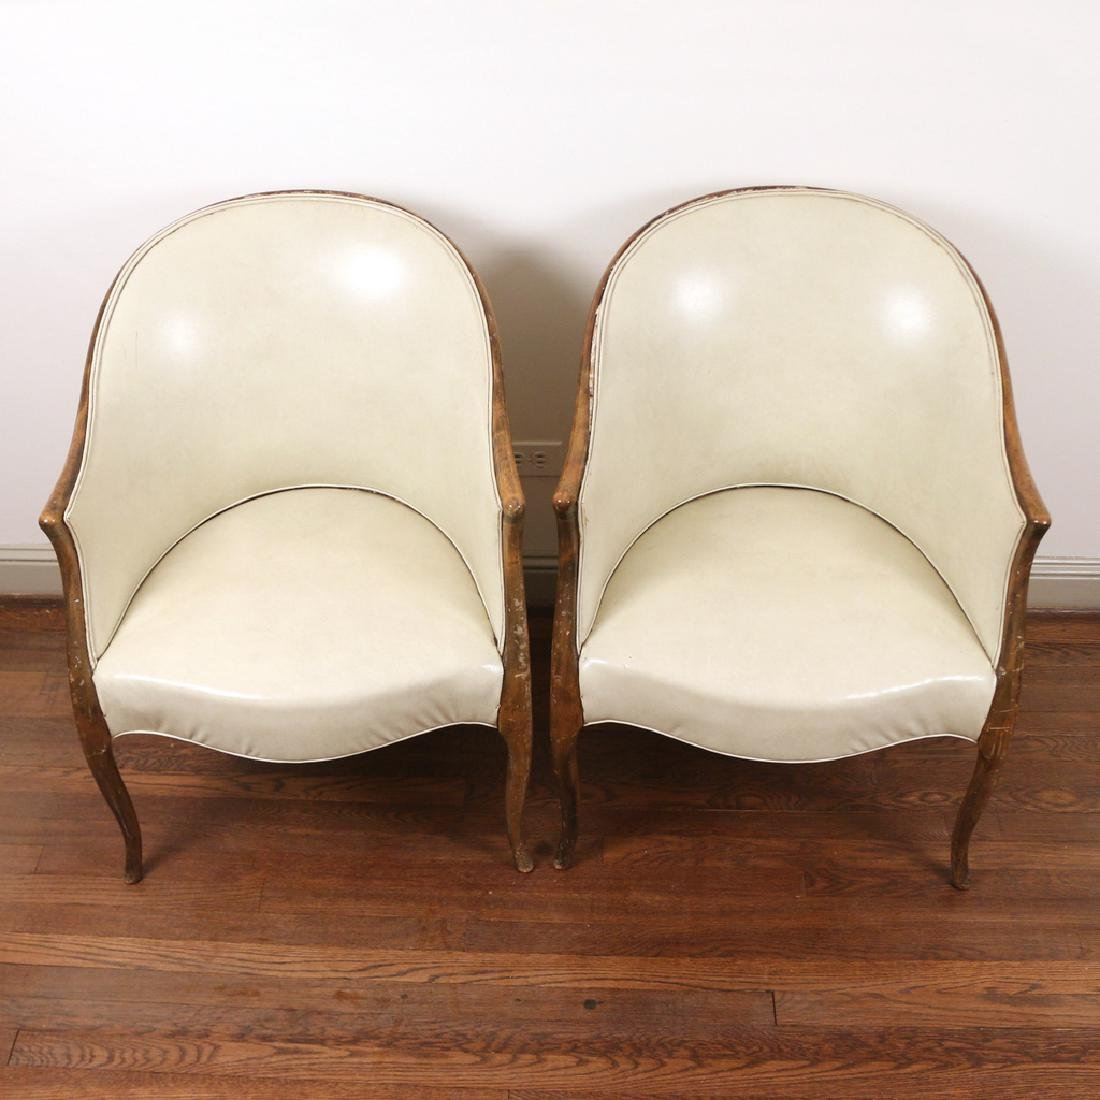 PAIR GEORGE III-STYLE TUB CHAIRS - 2